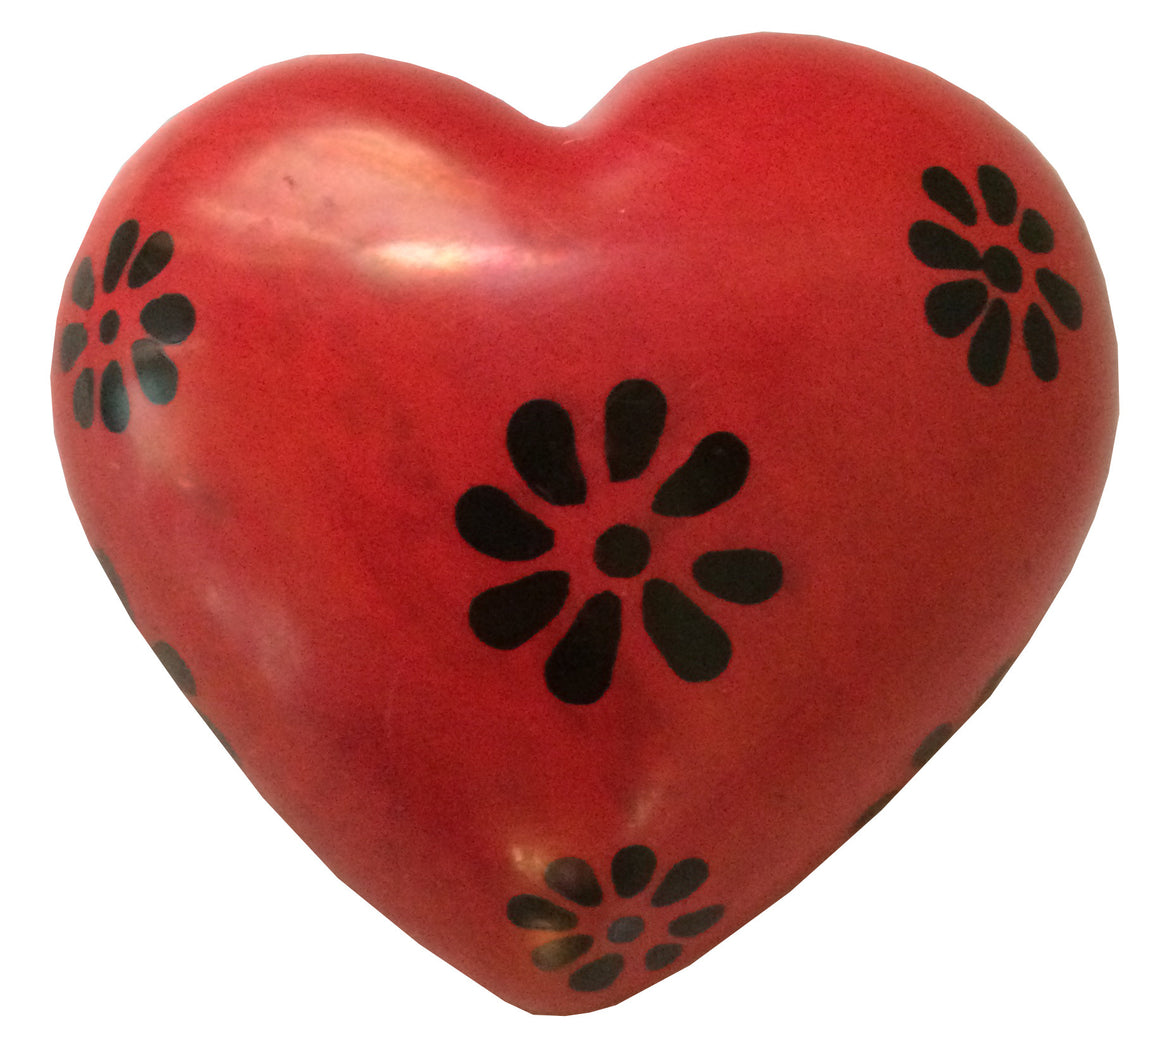 Heart-Shaped Stone Paperweights